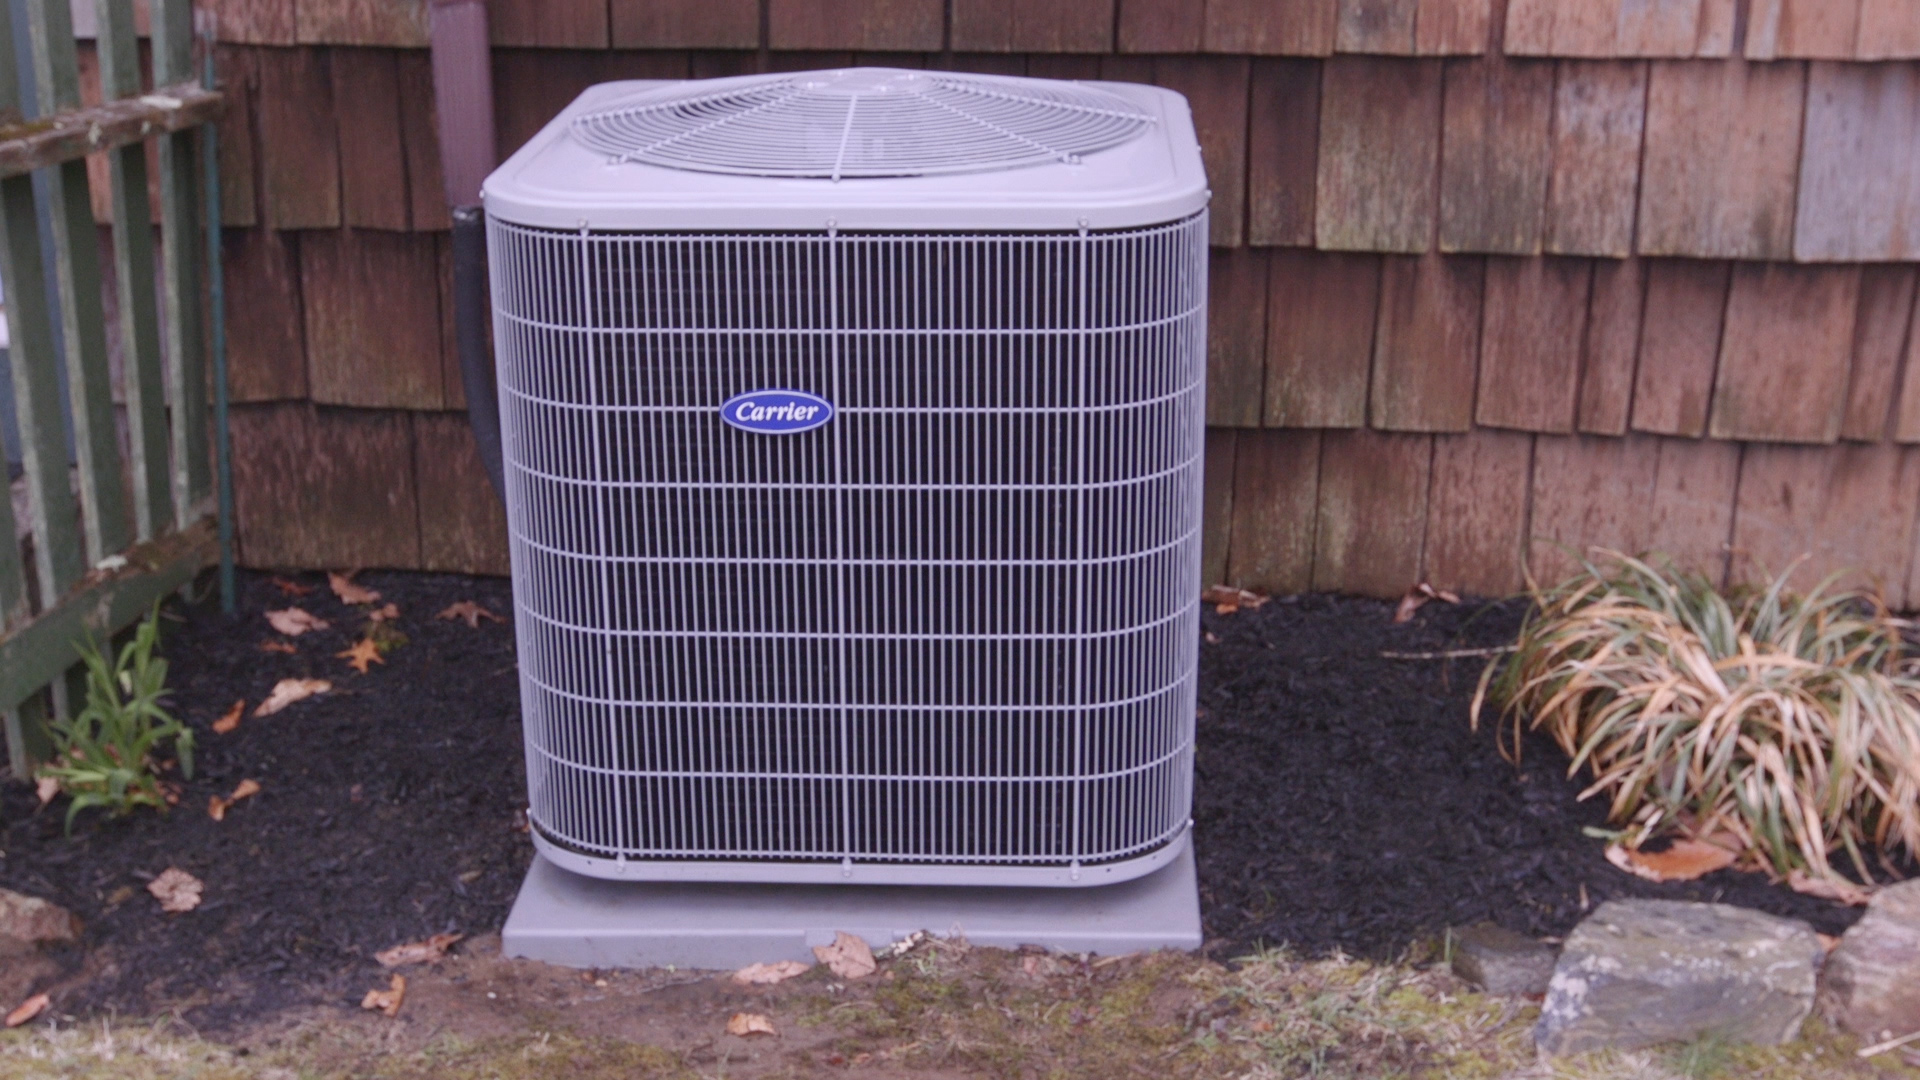 How to Buy an Energy-Efficient Central AC Unit Online